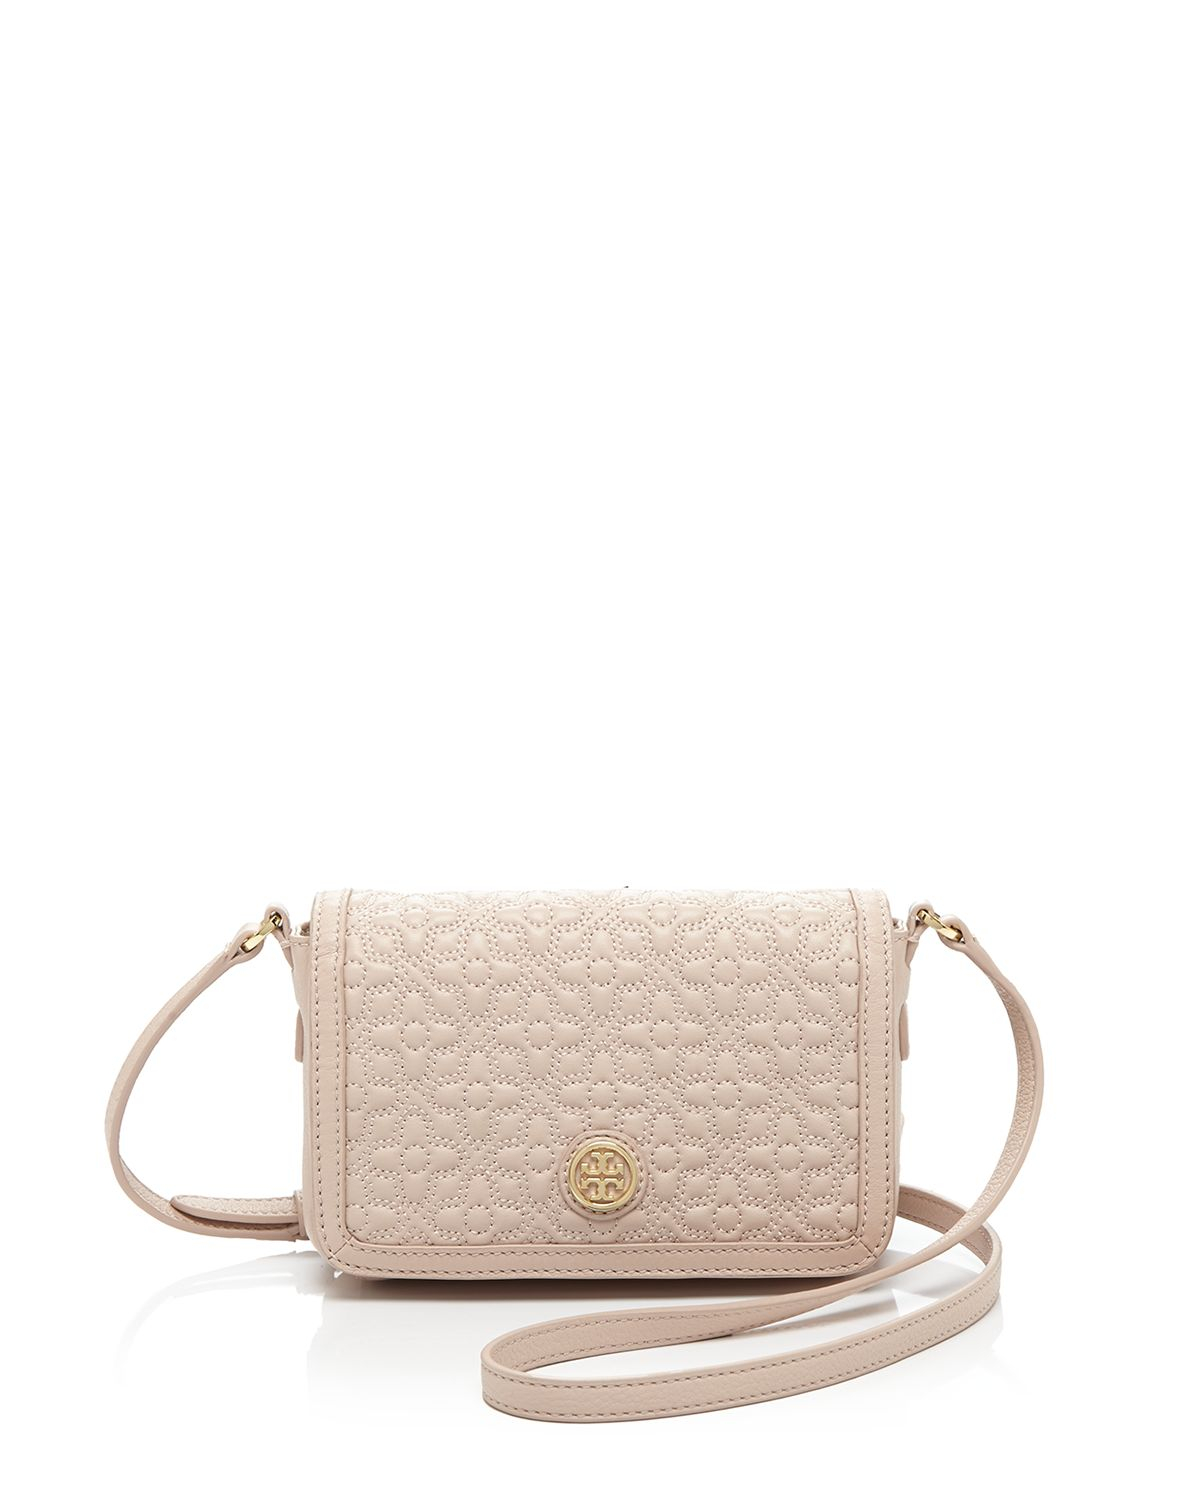 Tory Burch Mini Bag Bloomingdale S Exclusive Quilted In